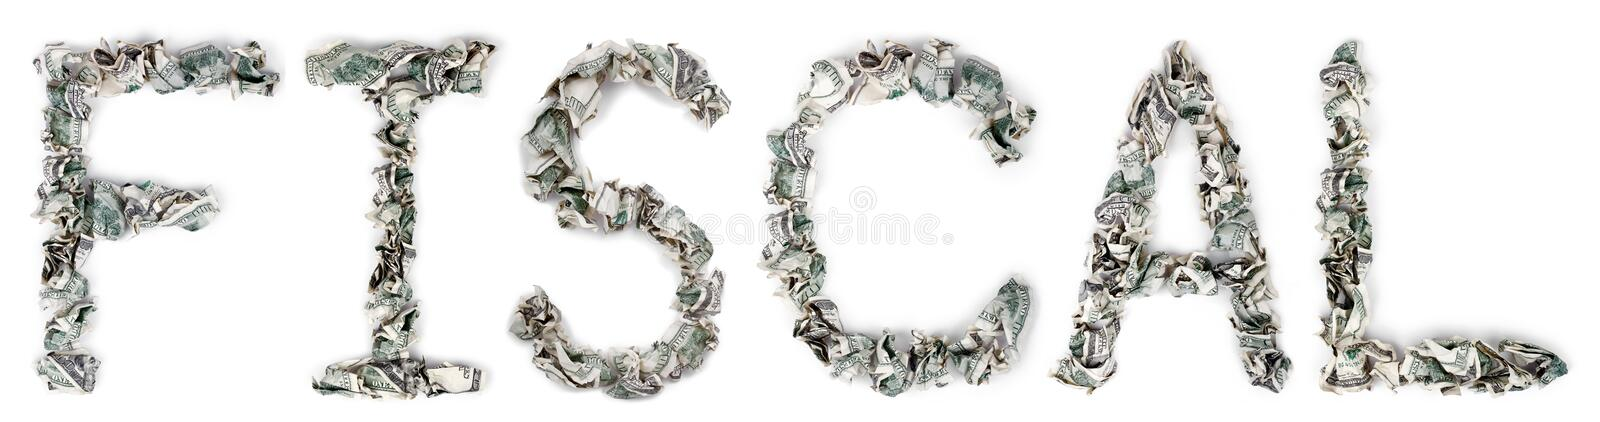 Download Fiscal - Crimped 100$ Bills Stock Image - Image: 29908281